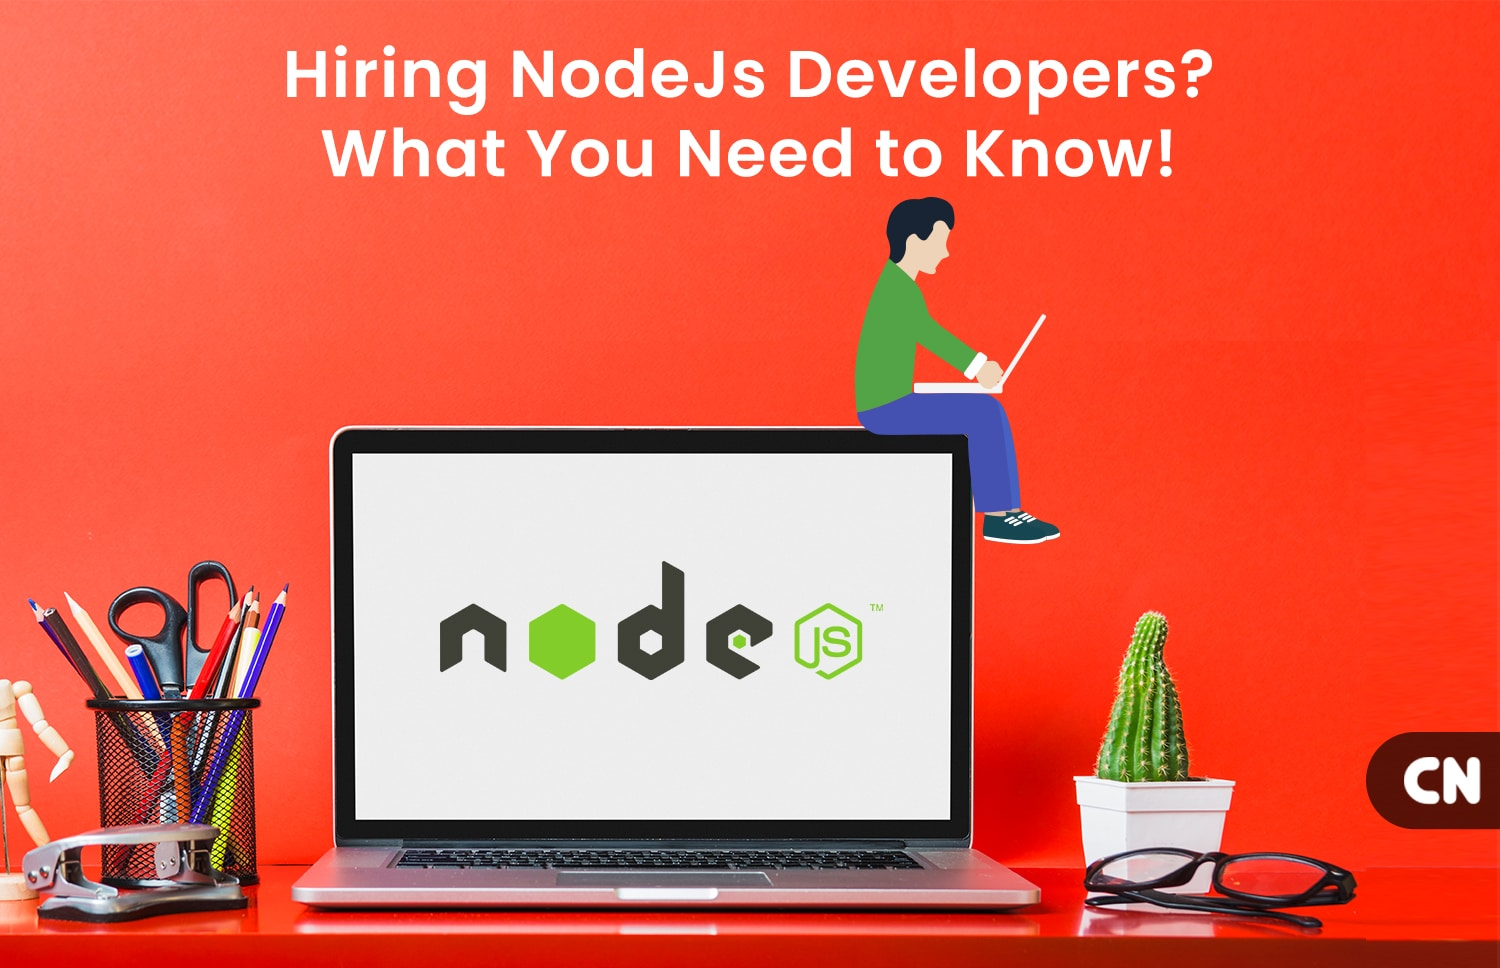 Hiring NodeJs Developers What You Need to Know